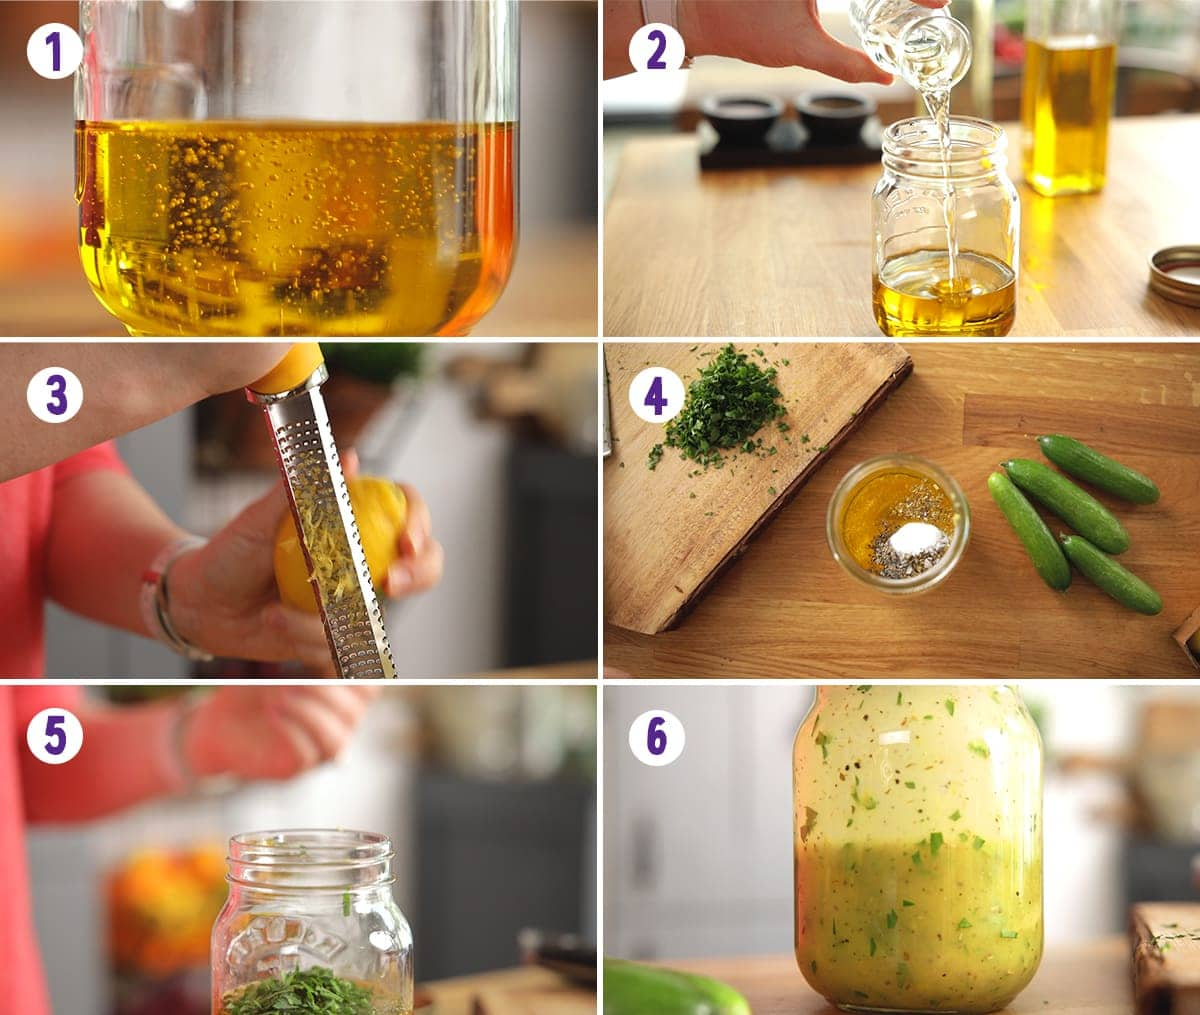 6 image collage showing how to make an Italian dressing for pasta salad